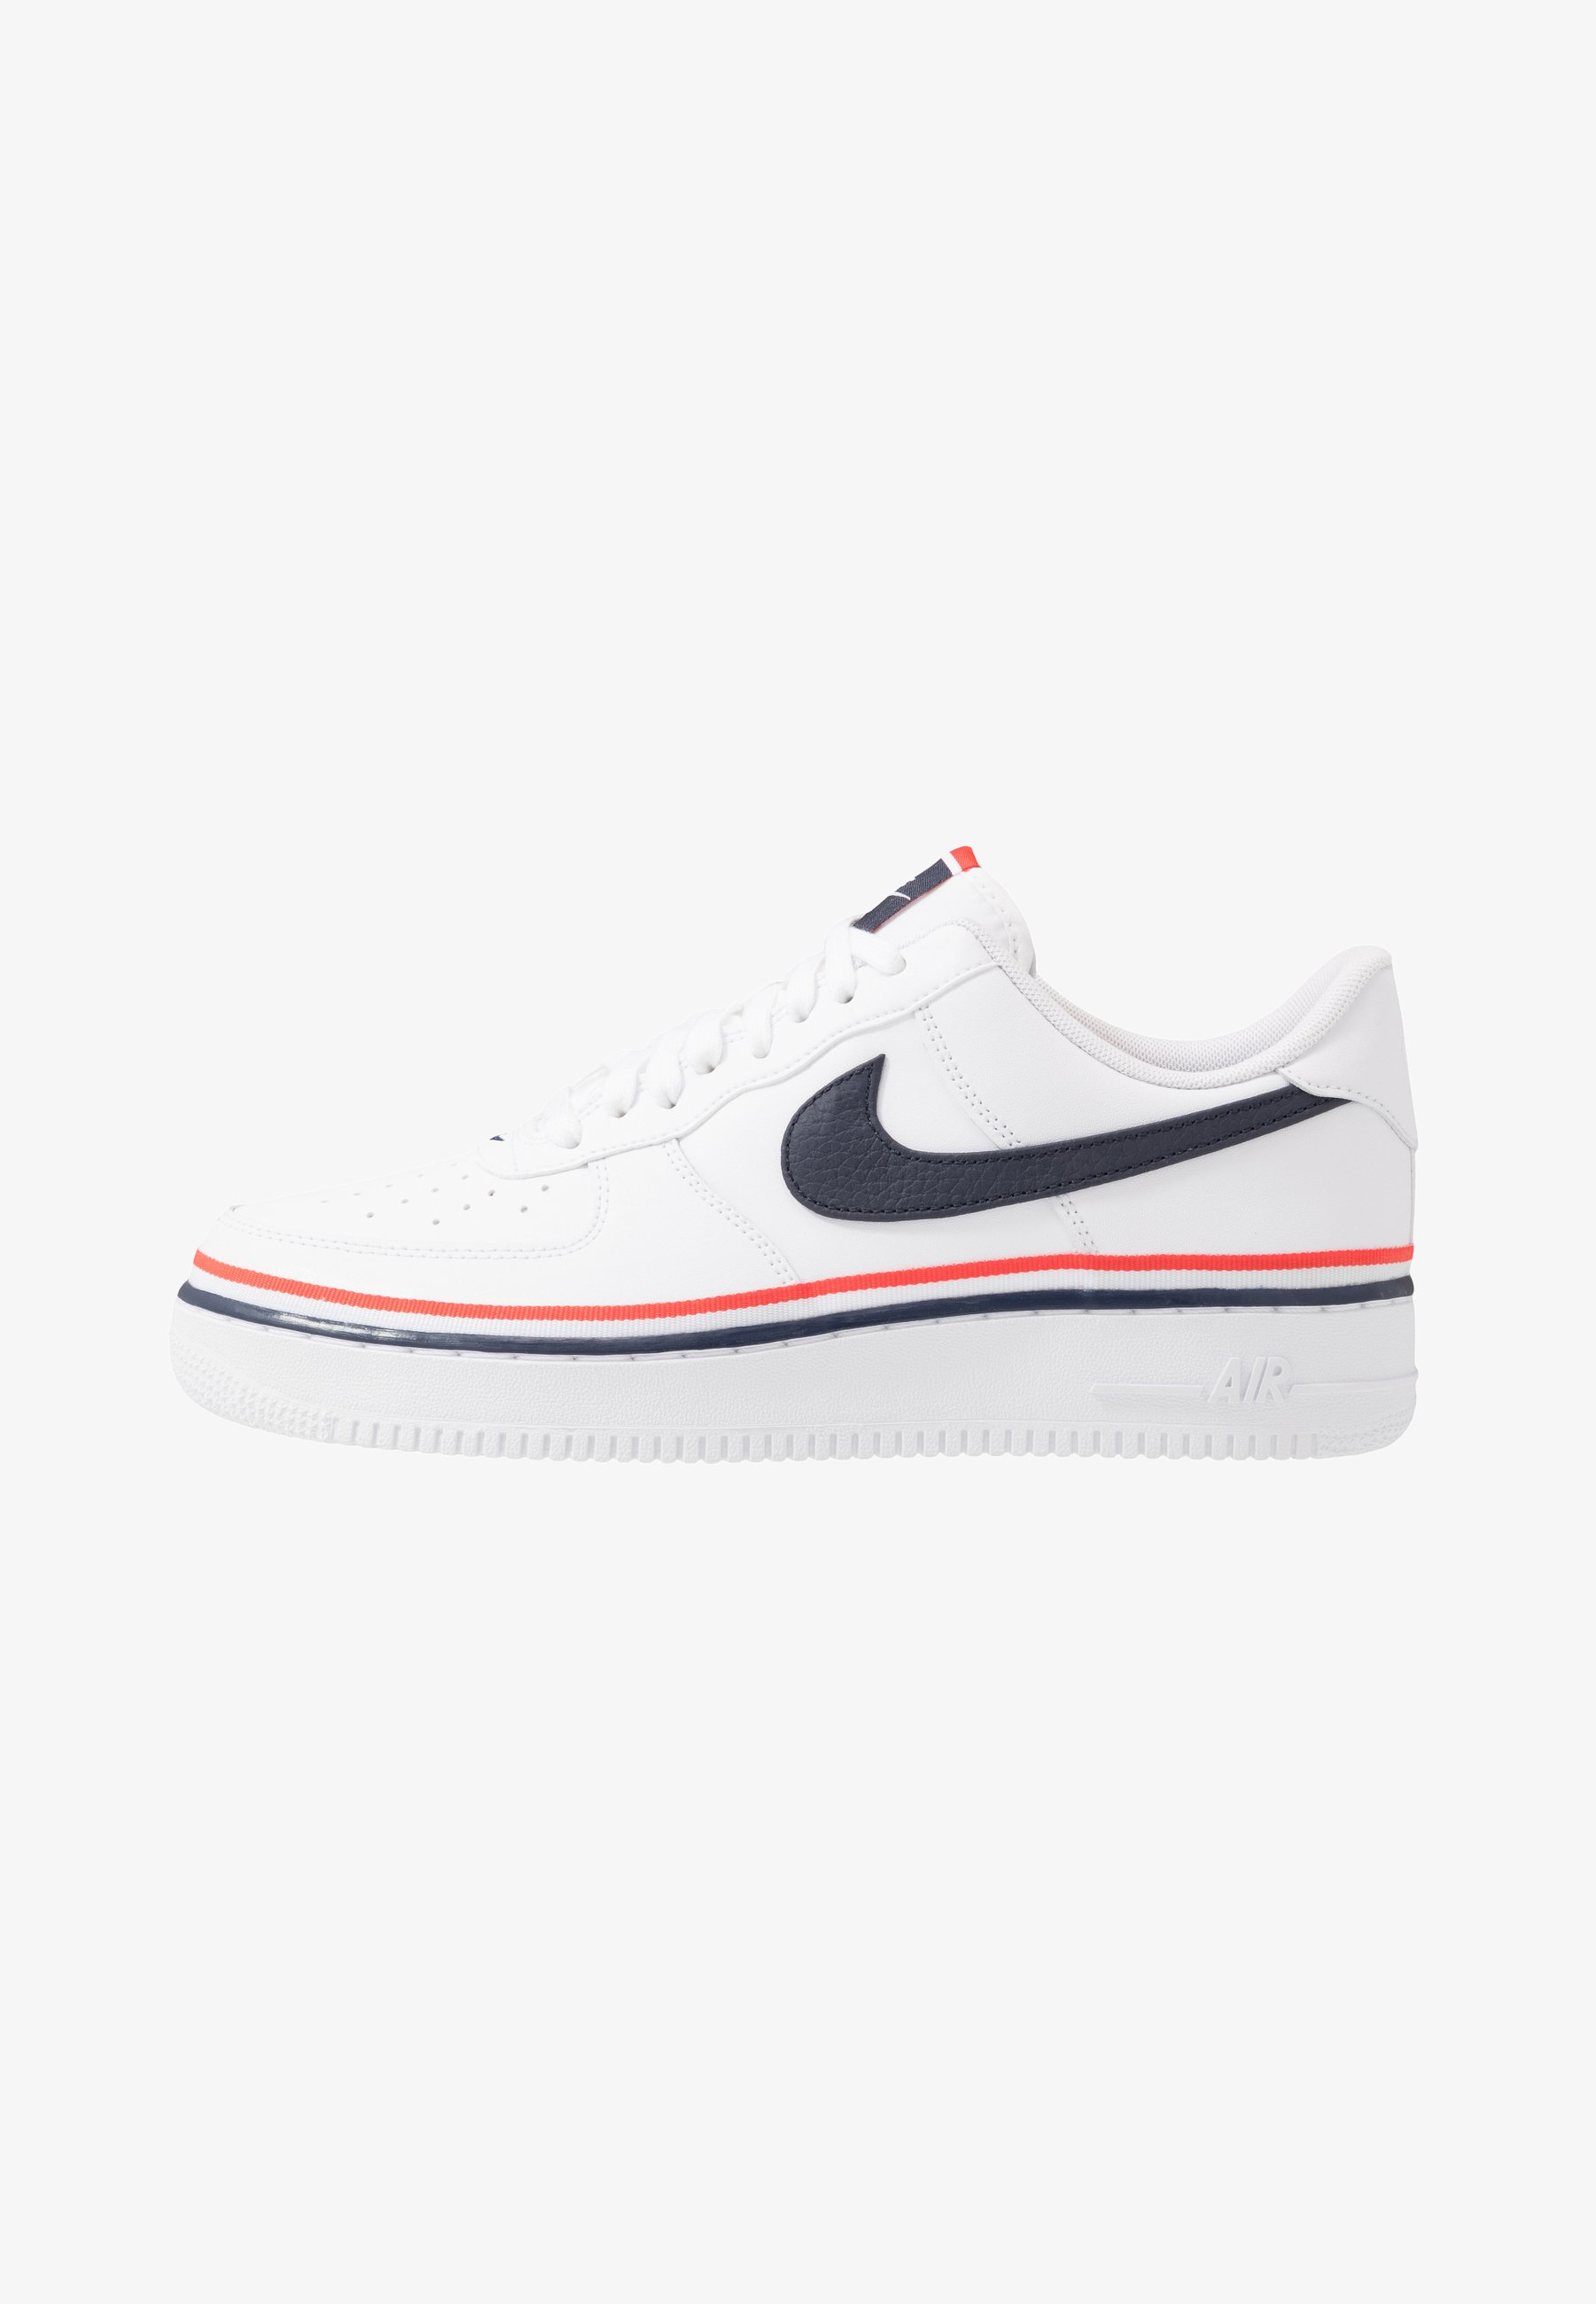 Nike Sportswear Air Force 1 07 Lv8 Sneakers Laag White Obsidian Habanero Red Wit Zalando Nl